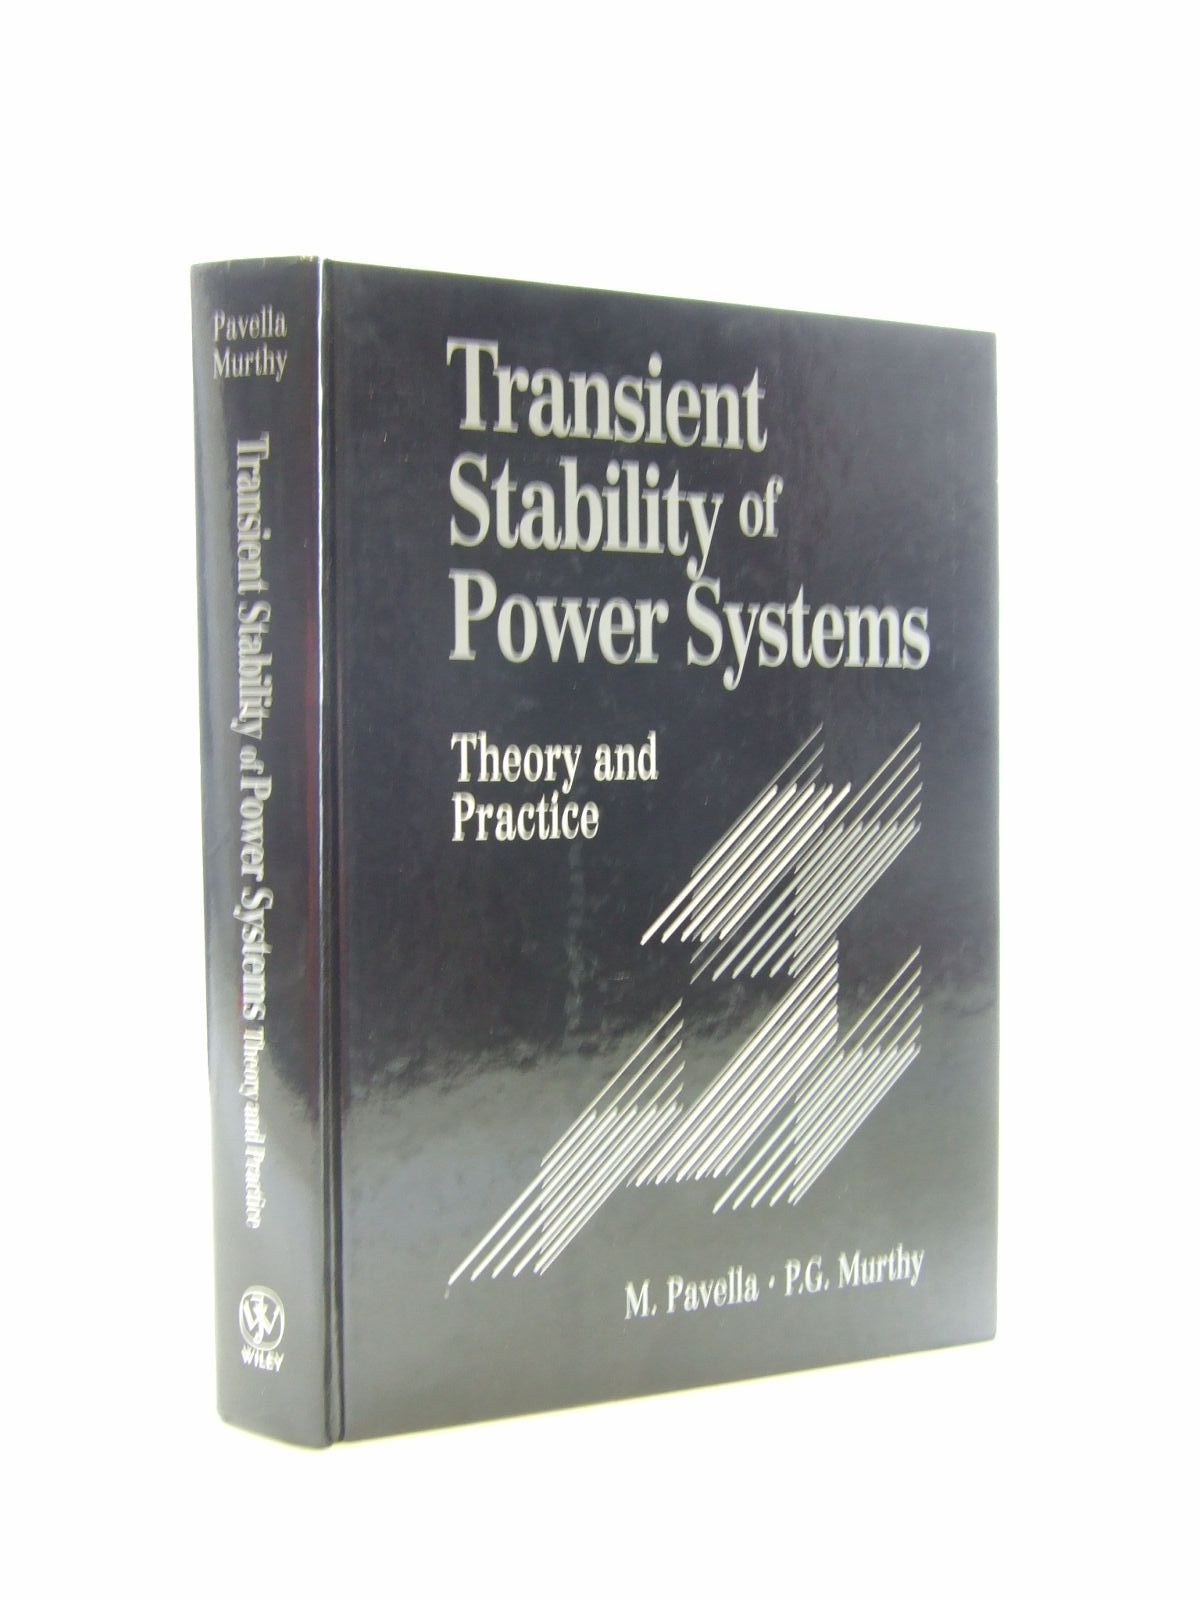 Photo of TRANSIENT STABILITY OF POWER SYSTEMS THEORY AND PRACTICE written by Pavella, M. Murthy, P.G. published by John Wiley & Sons (STOCK CODE: 1207462)  for sale by Stella & Rose's Books